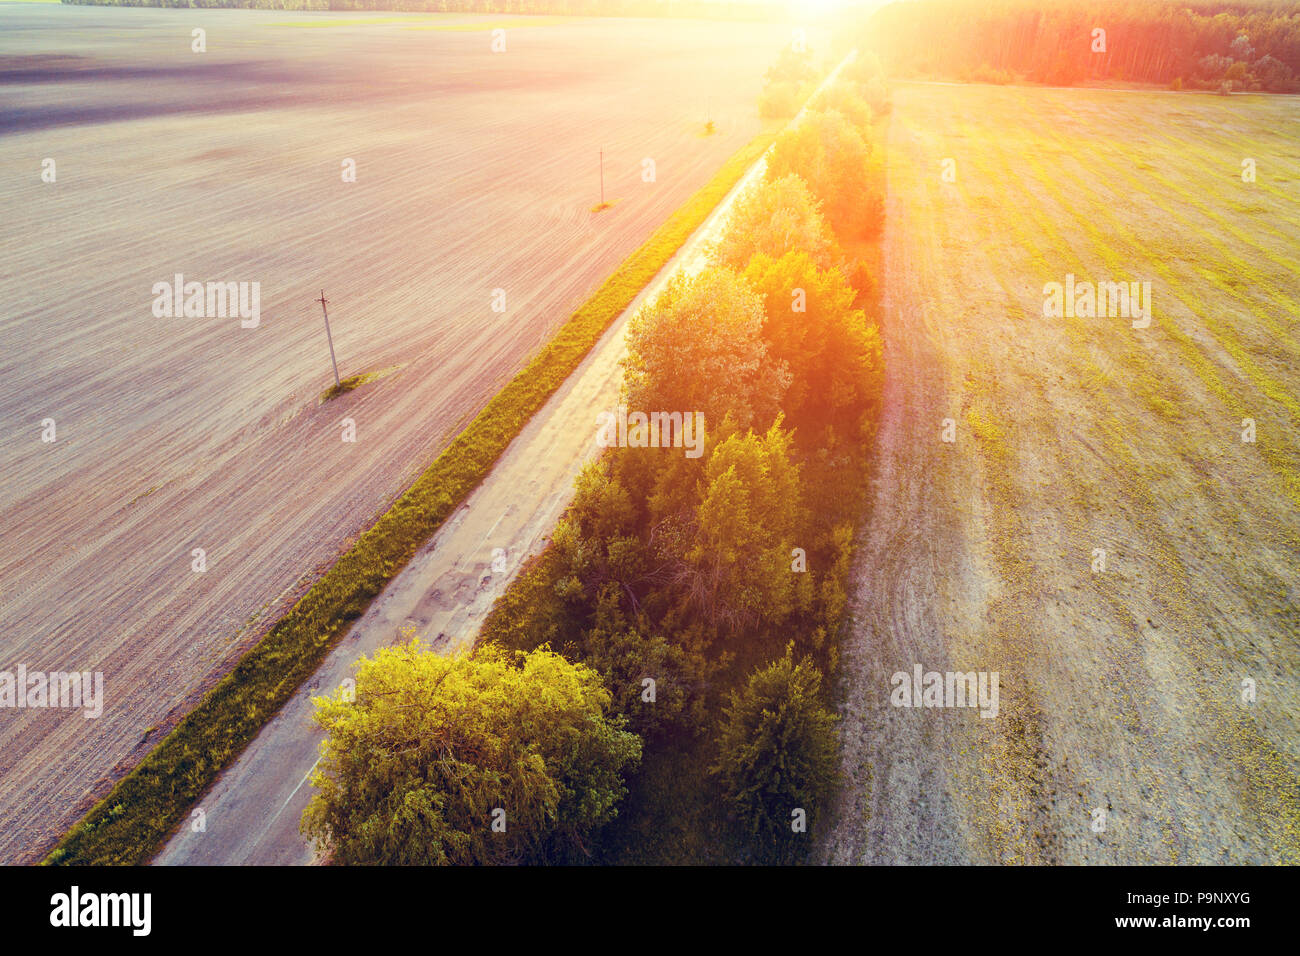 Aerial view of a country road at sunset. Rural evening landscape - Stock Image